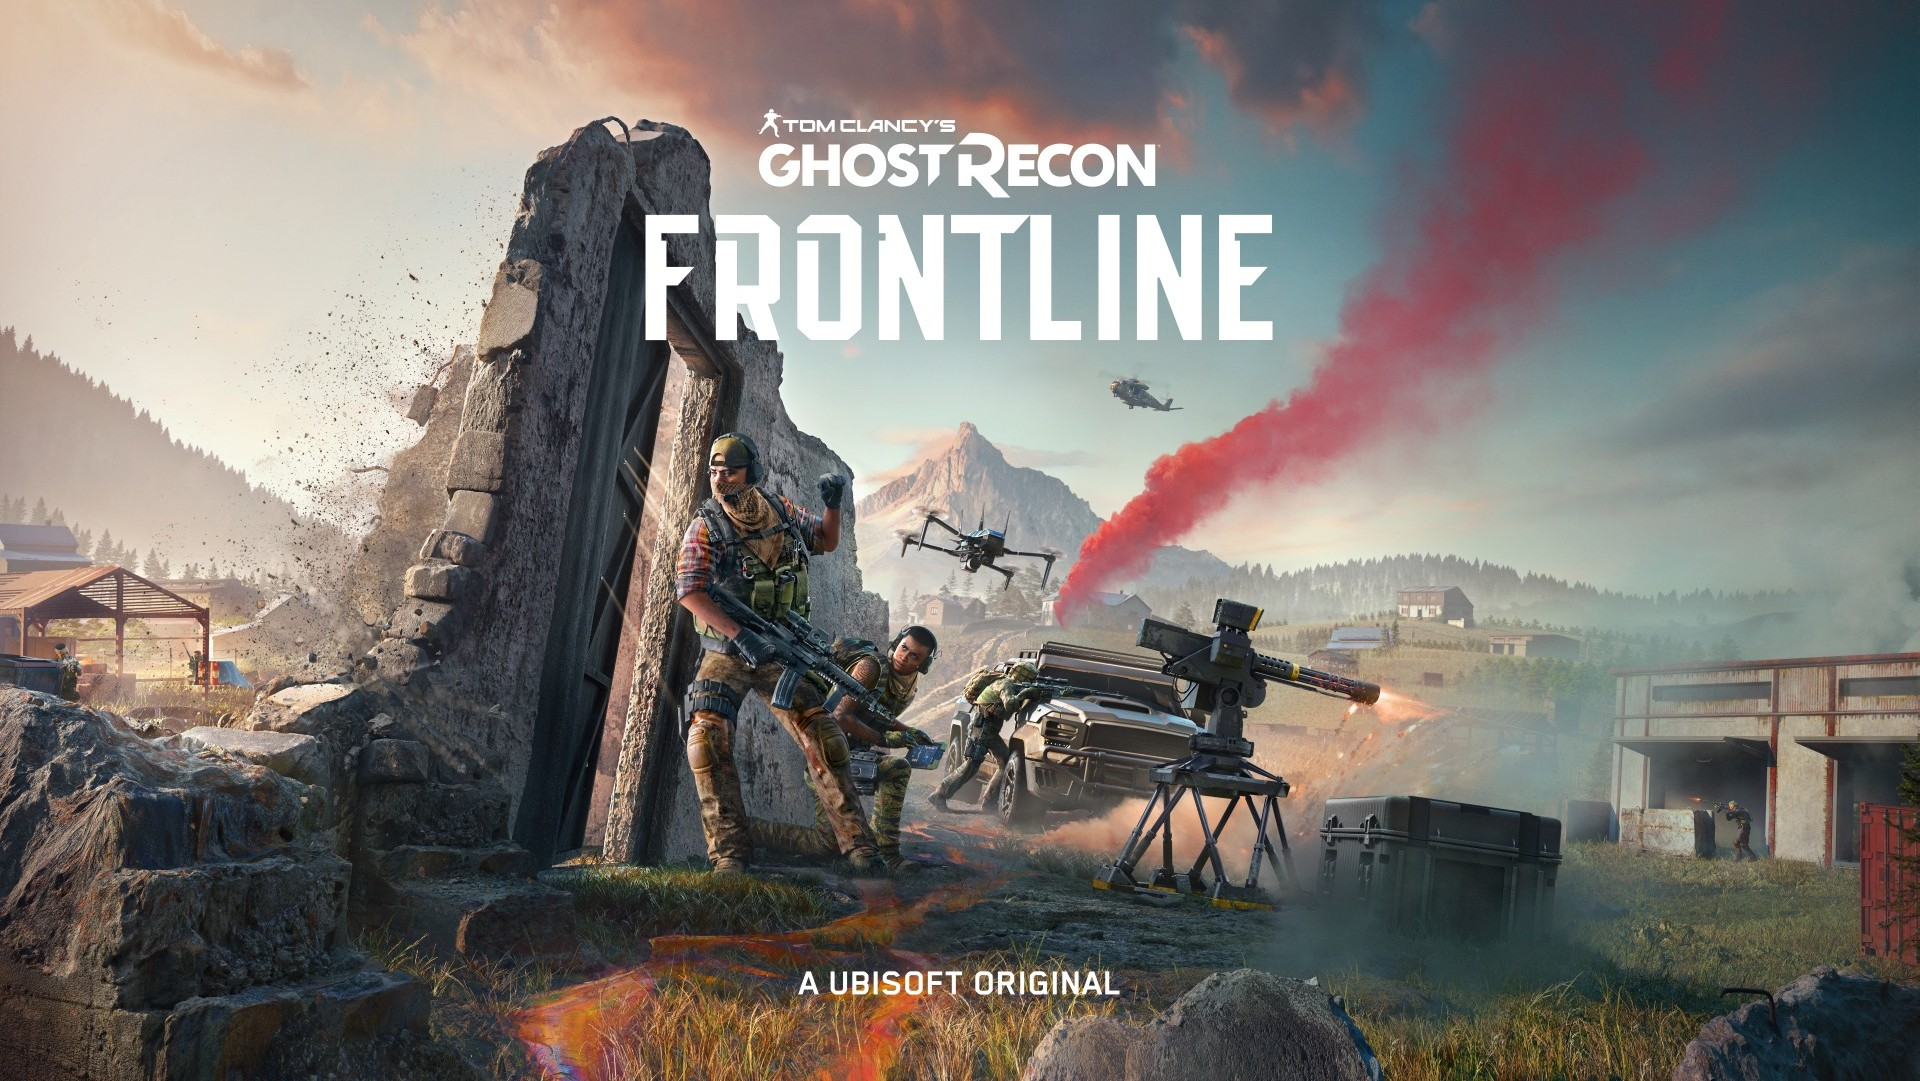 Video For Ghost Recon Frontline Drops 100 Players into Massive Tactical-Action Battles